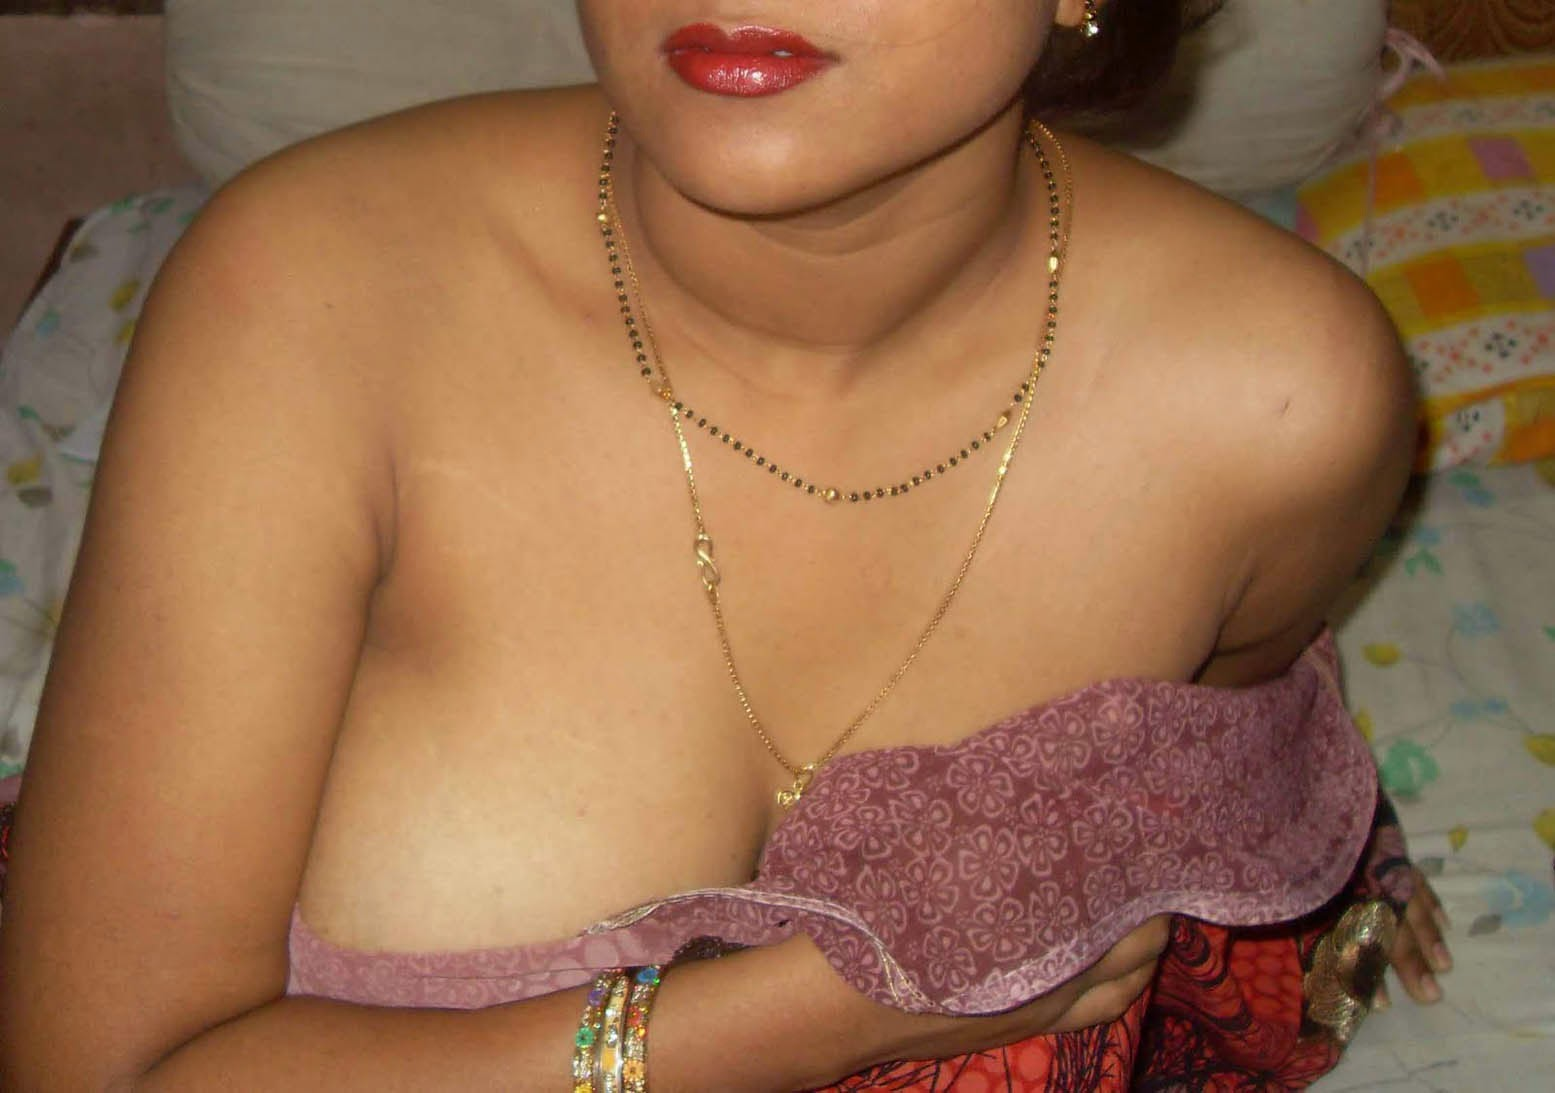 Agree, aunty having saree fuck remarkable, rather